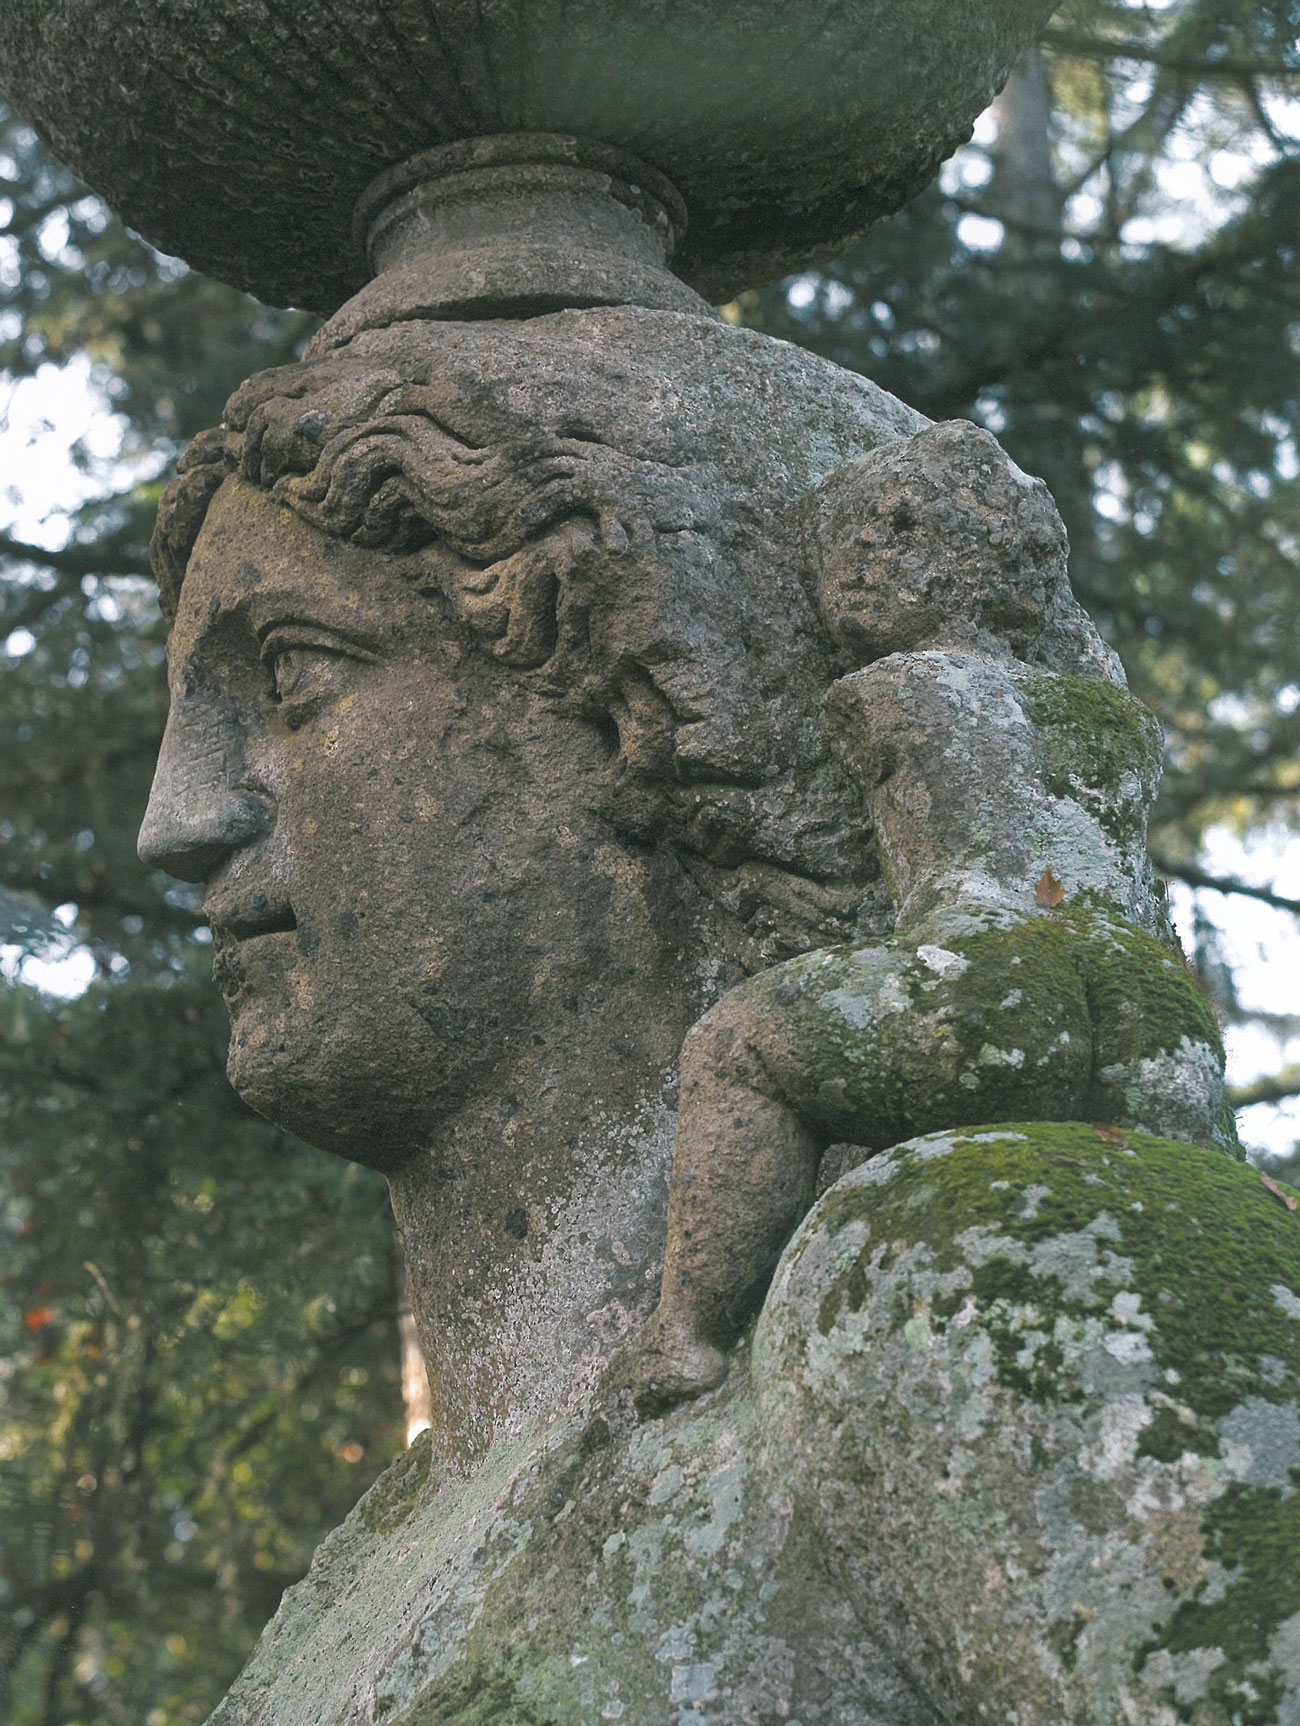 And a tiny child clings to Demeter's neck. Image courtesy of THE GARDEN AT BOMARZO, by Jessie Sheeler.